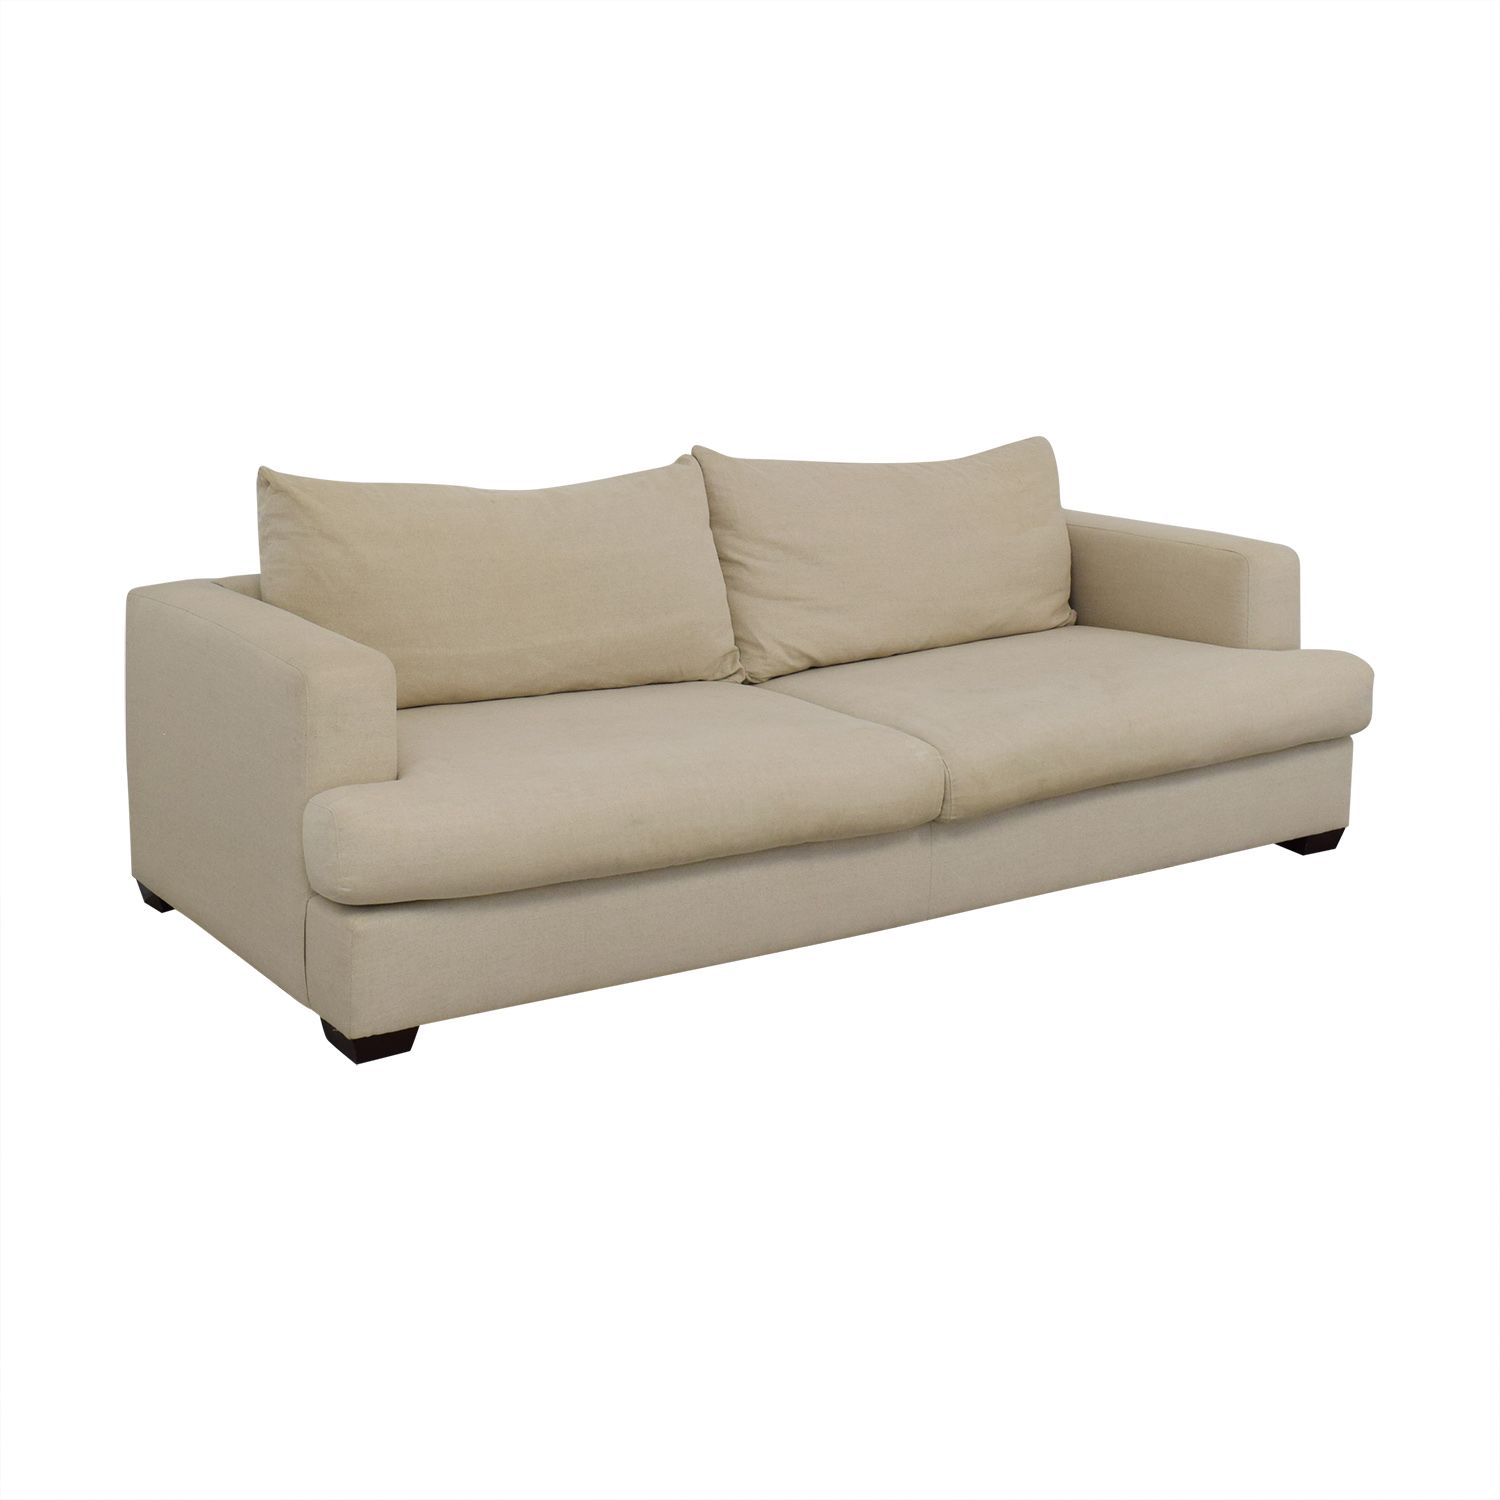 Pottery Barn Pottery Barn Grand Hampton Couch on sale